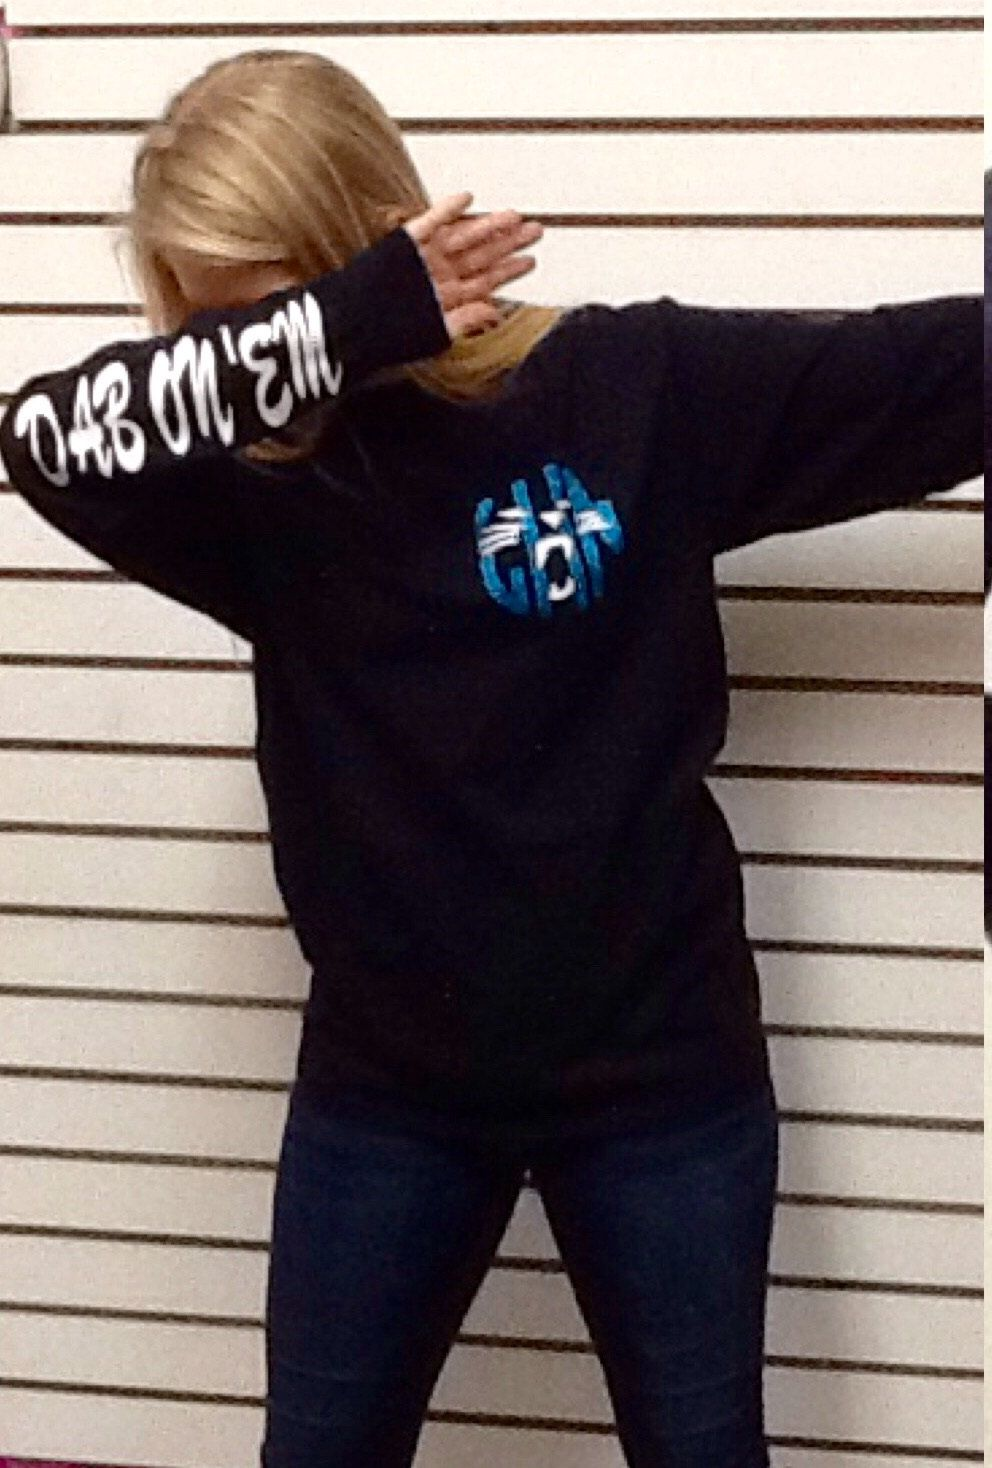 Design your own t-shirt and hats - Carolina Panthers Dab On Em Gopanthers Monogram T Shirt By Heyyallandco On Etsy